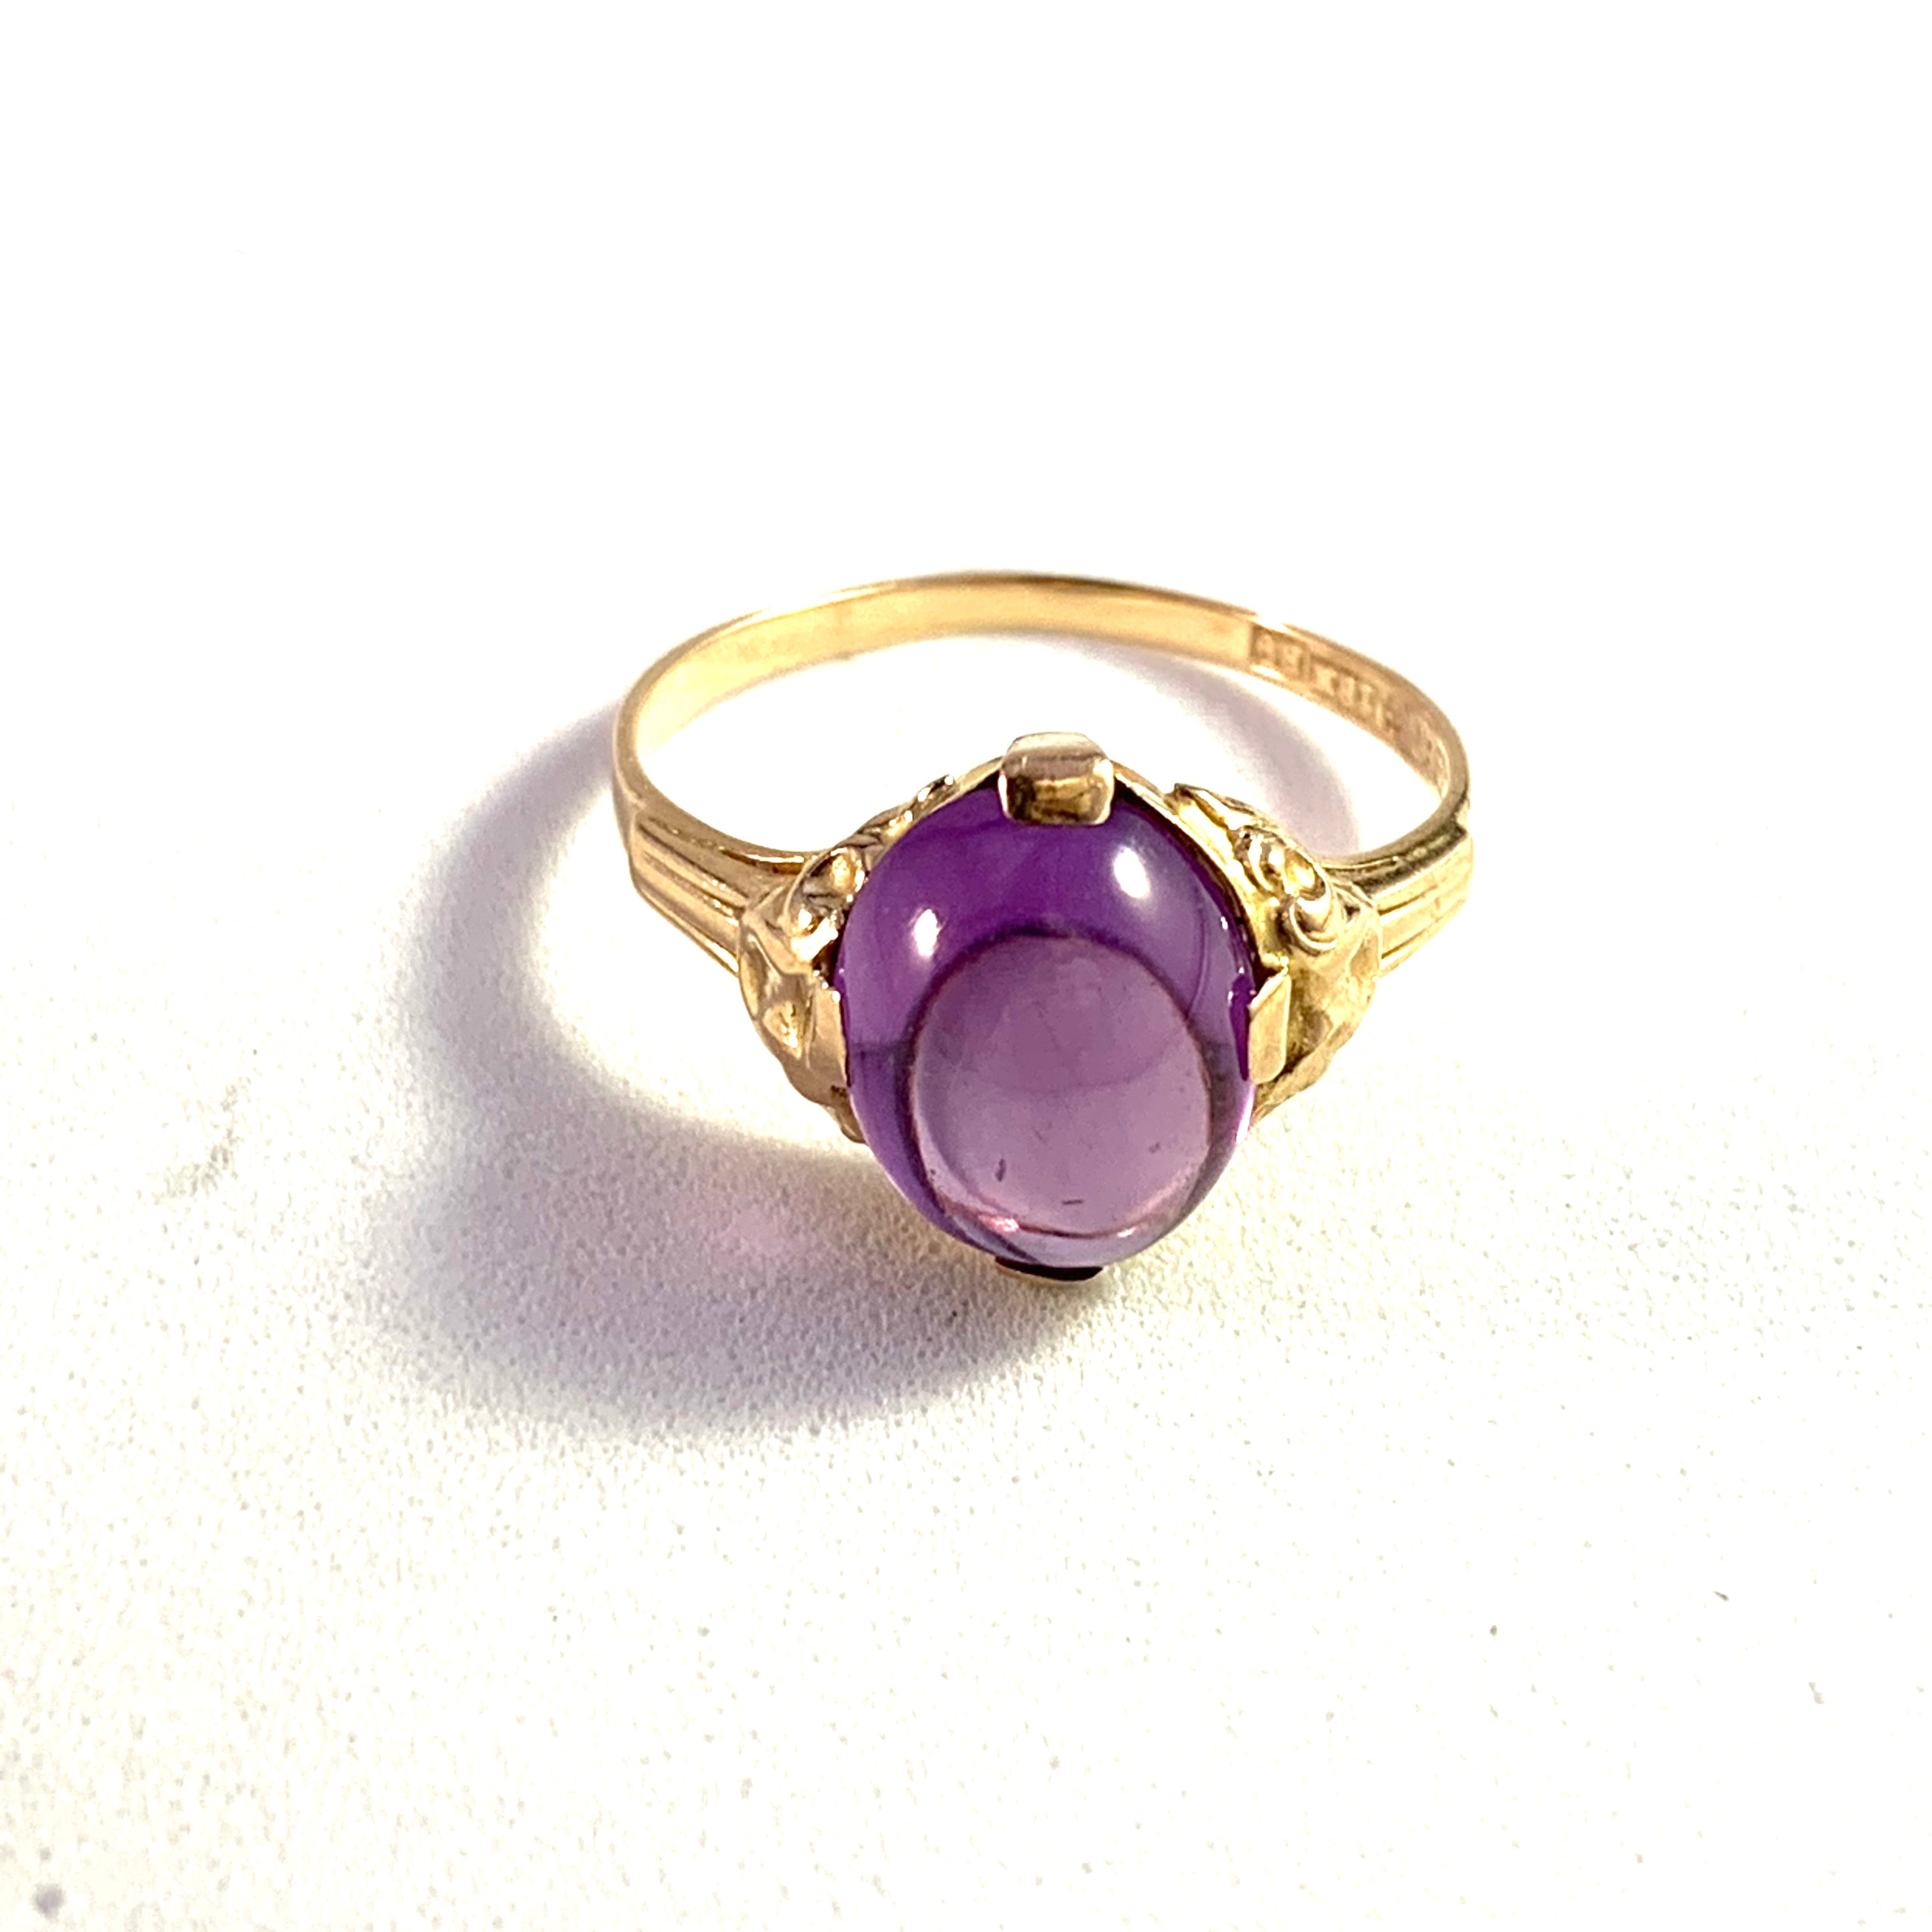 Ceson, Sweden 1952 Mid Century 18k Gold Synthetic Sapphire Ring.